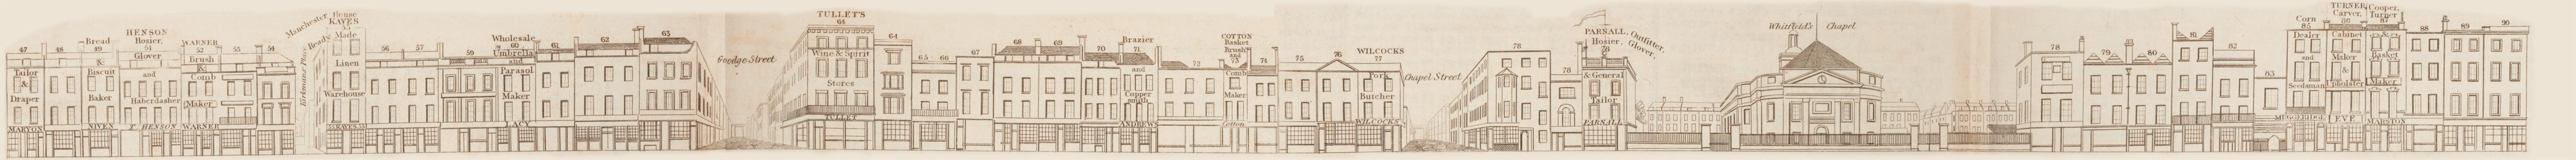 map - Tallis's London street views : No. 52. Tottenham Court Road, division 2 (west)